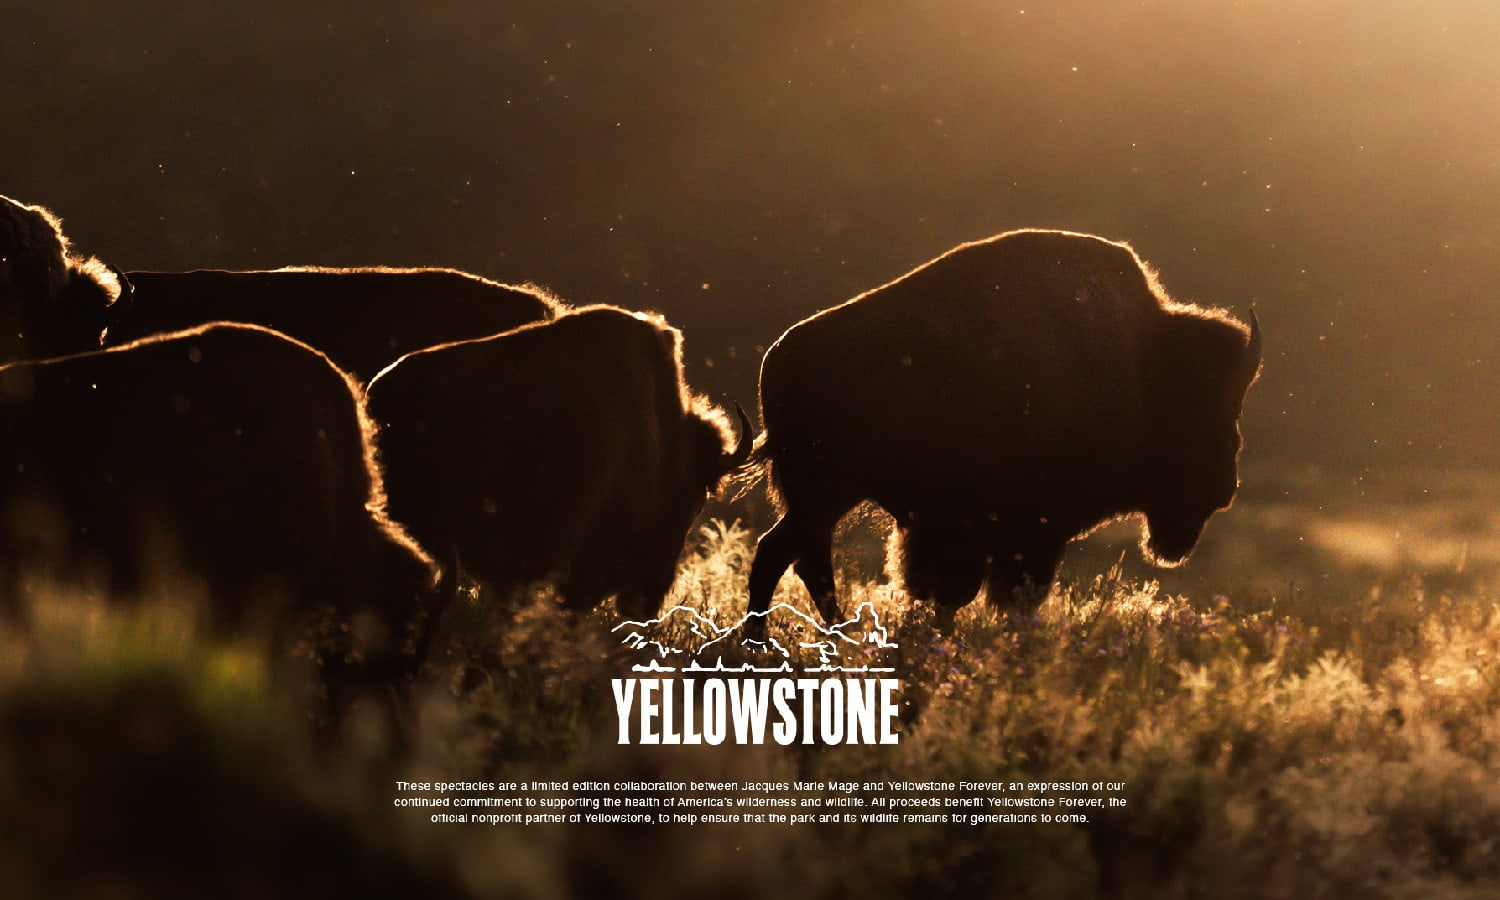 JMM YELLOWSTONE Forever